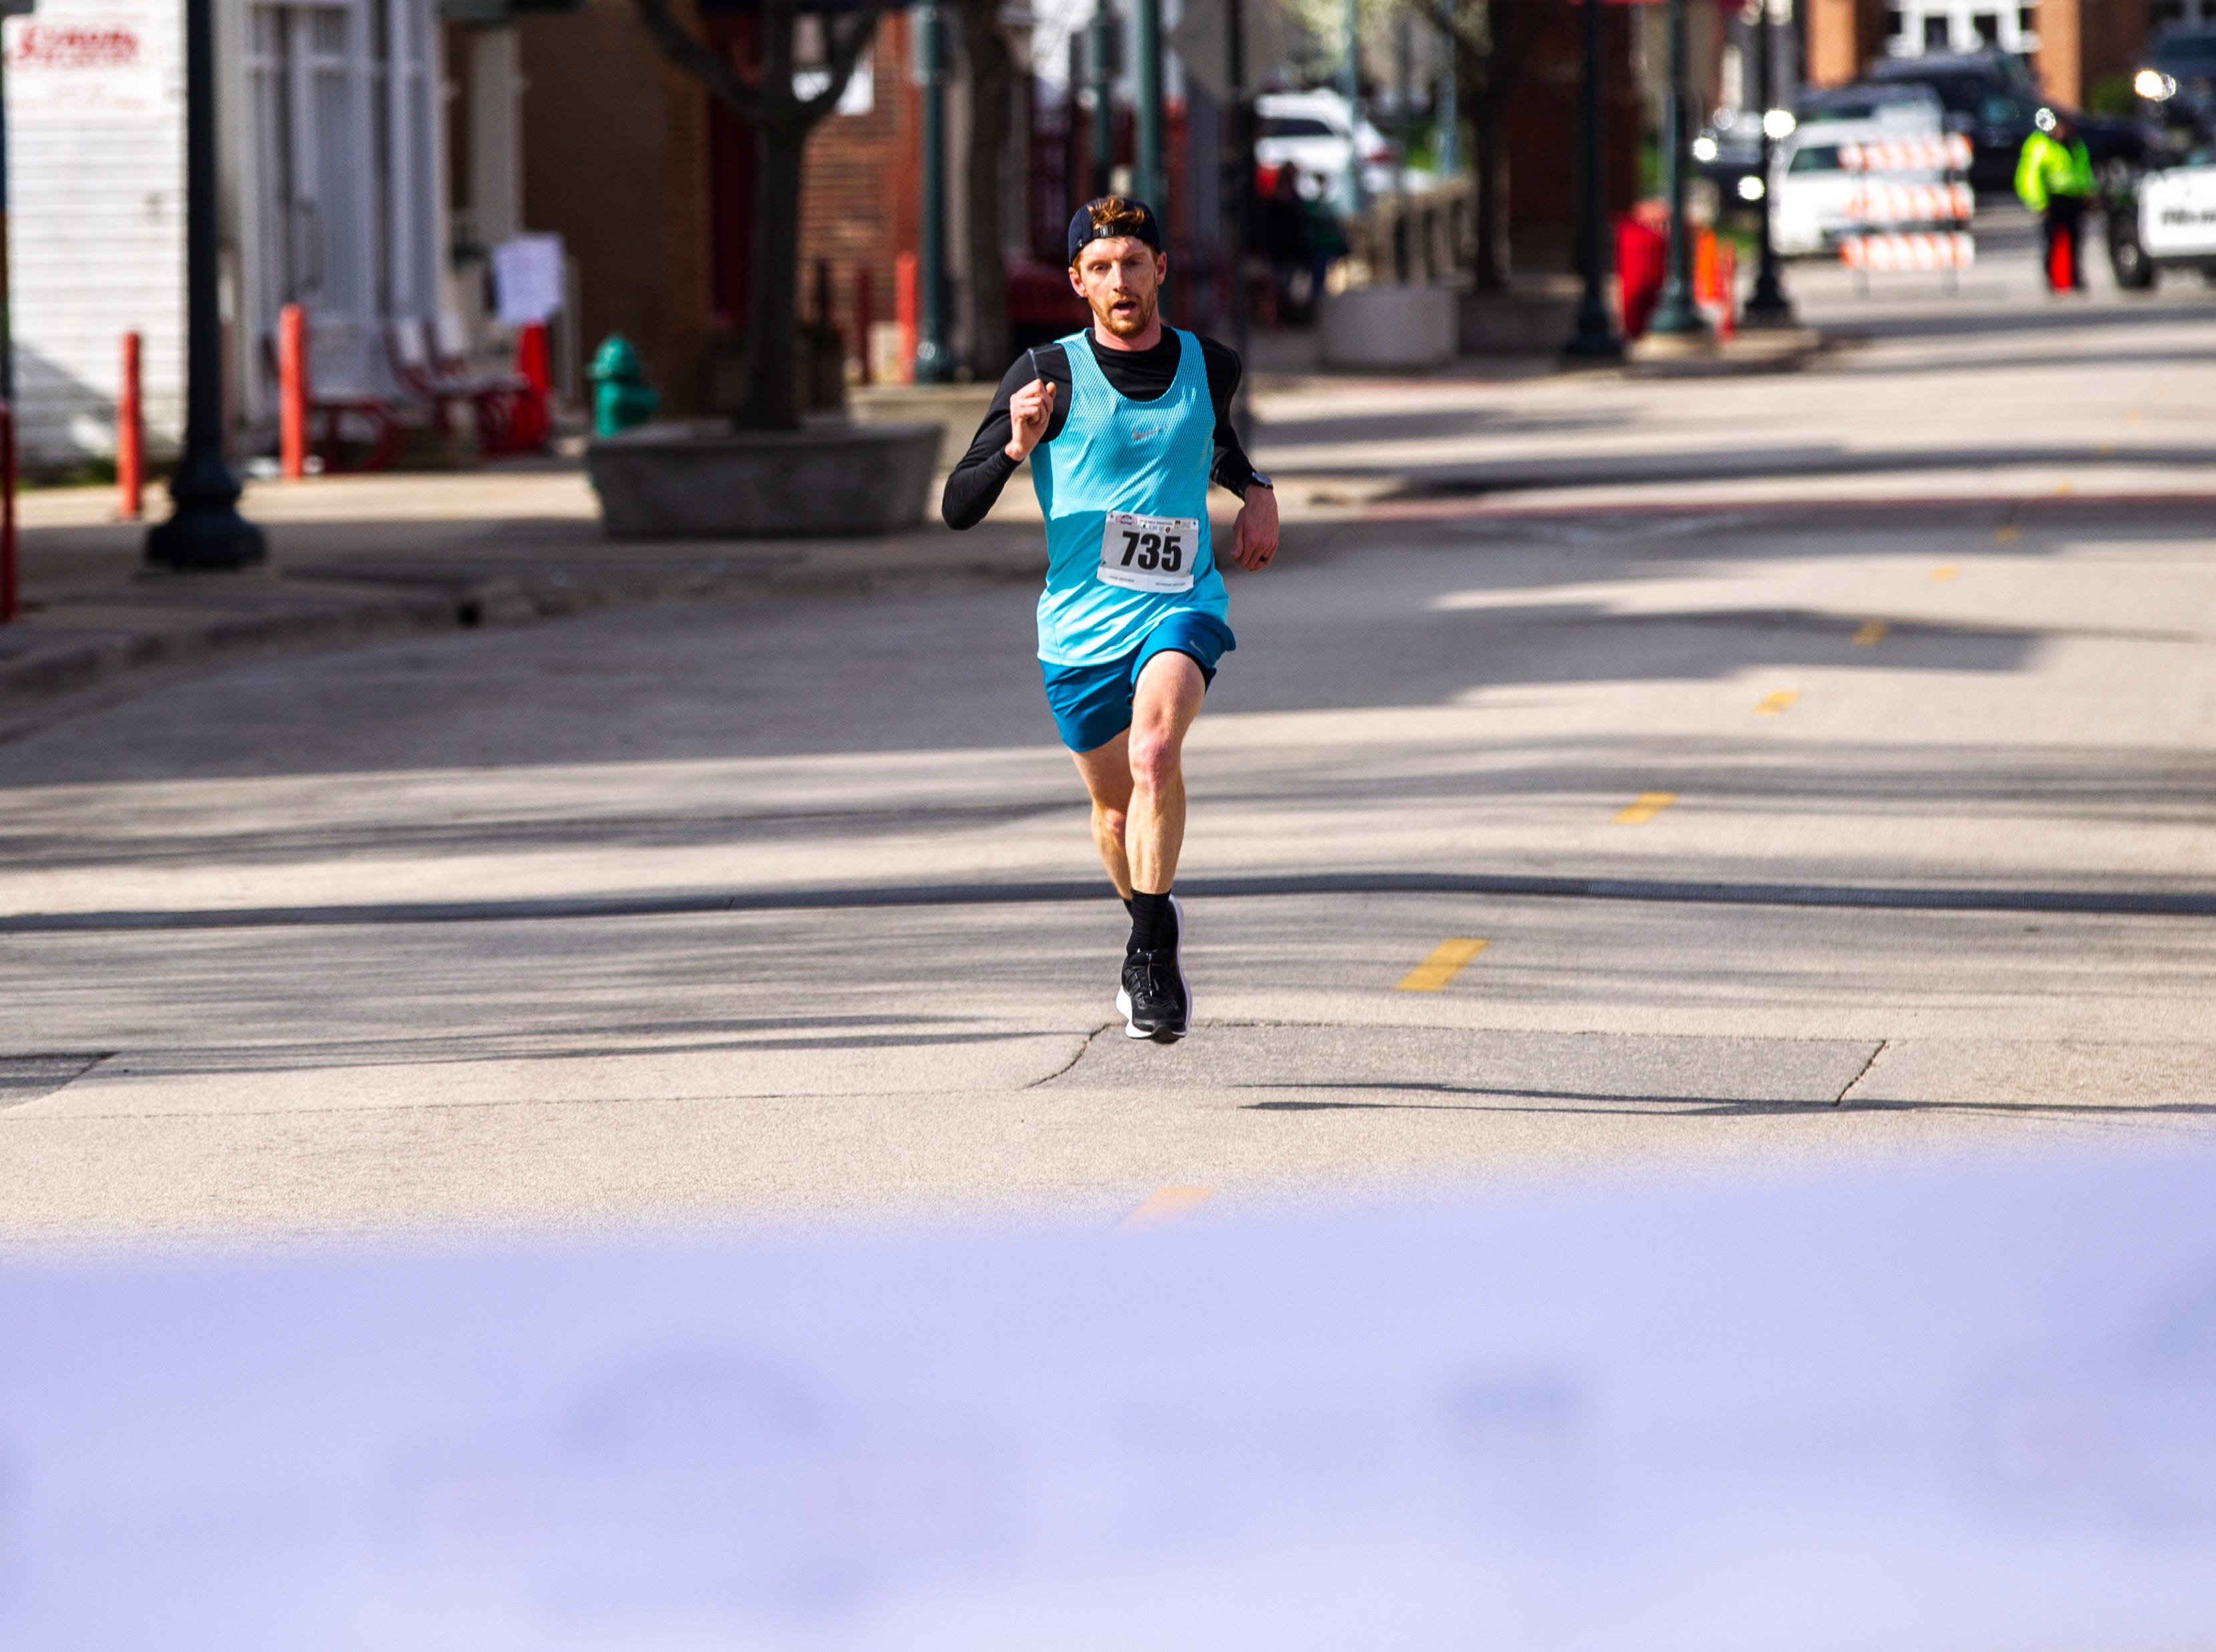 Erik Bandy nears the finish line for the half marathon during the second annual Run CRANDIC marathon, Sunday, April 28, 2019, along 16th Avenue SE in Cedar Rapids, Iowa. Bandy finished with a time of 1:12:13.